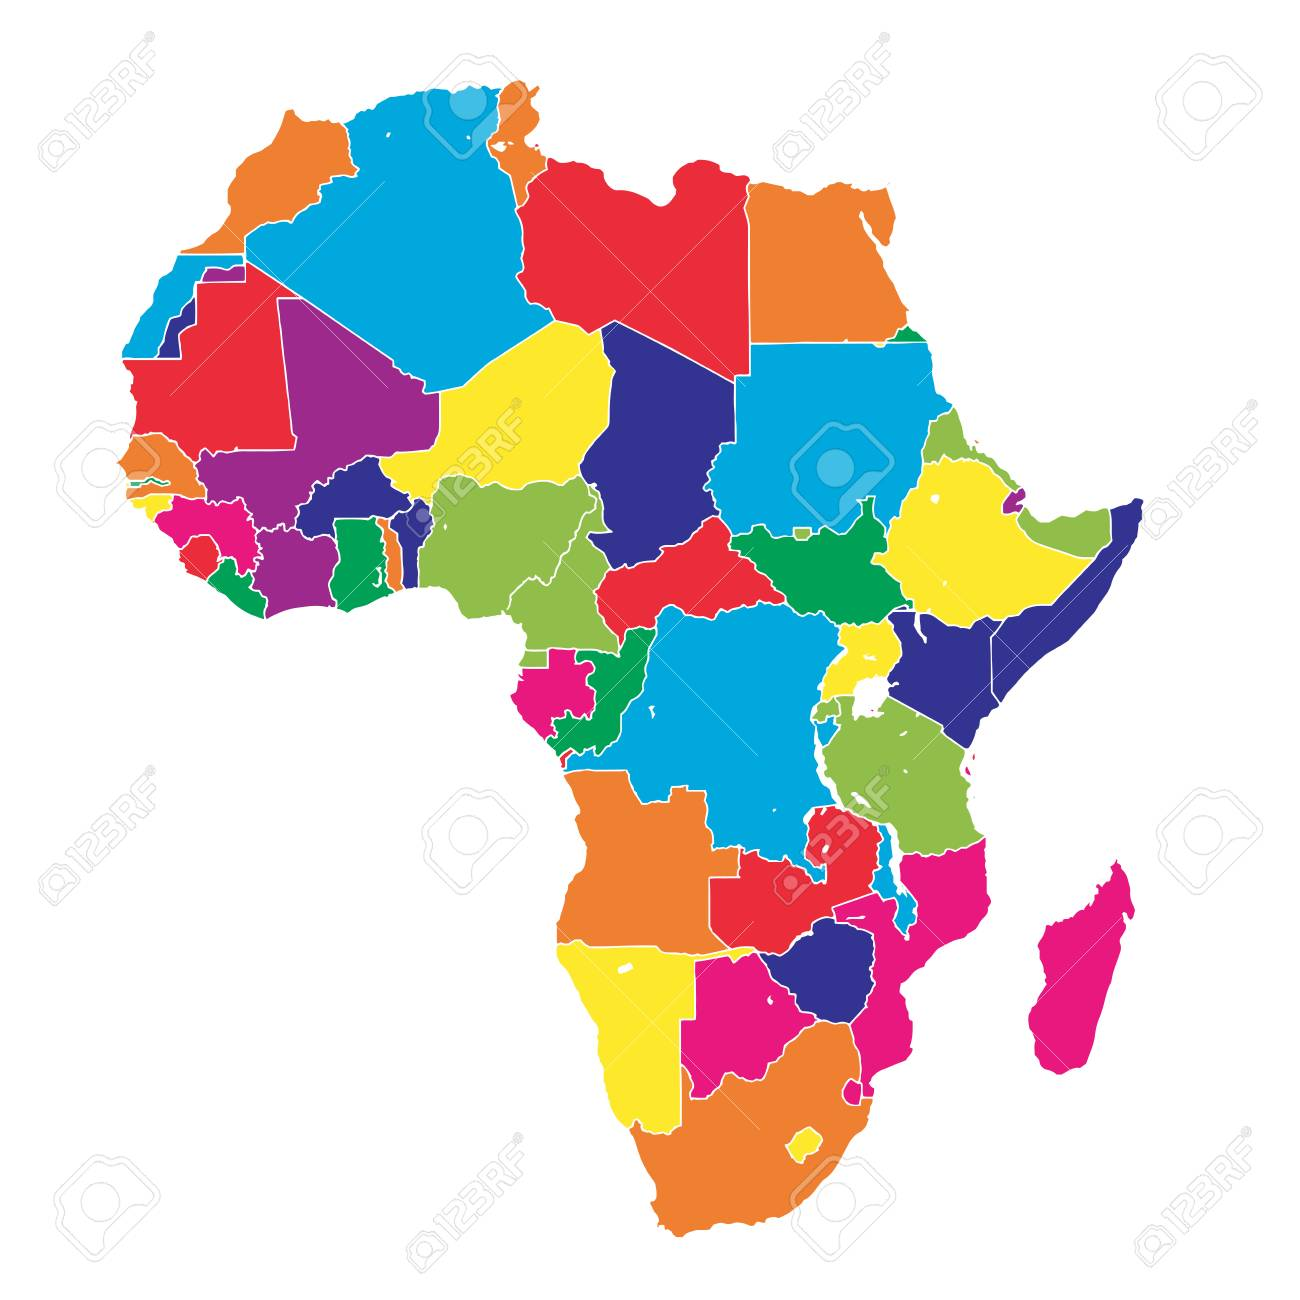 Colorful Map Of Africa.Africa Colorful Vector Map Political Version Usable For Travel